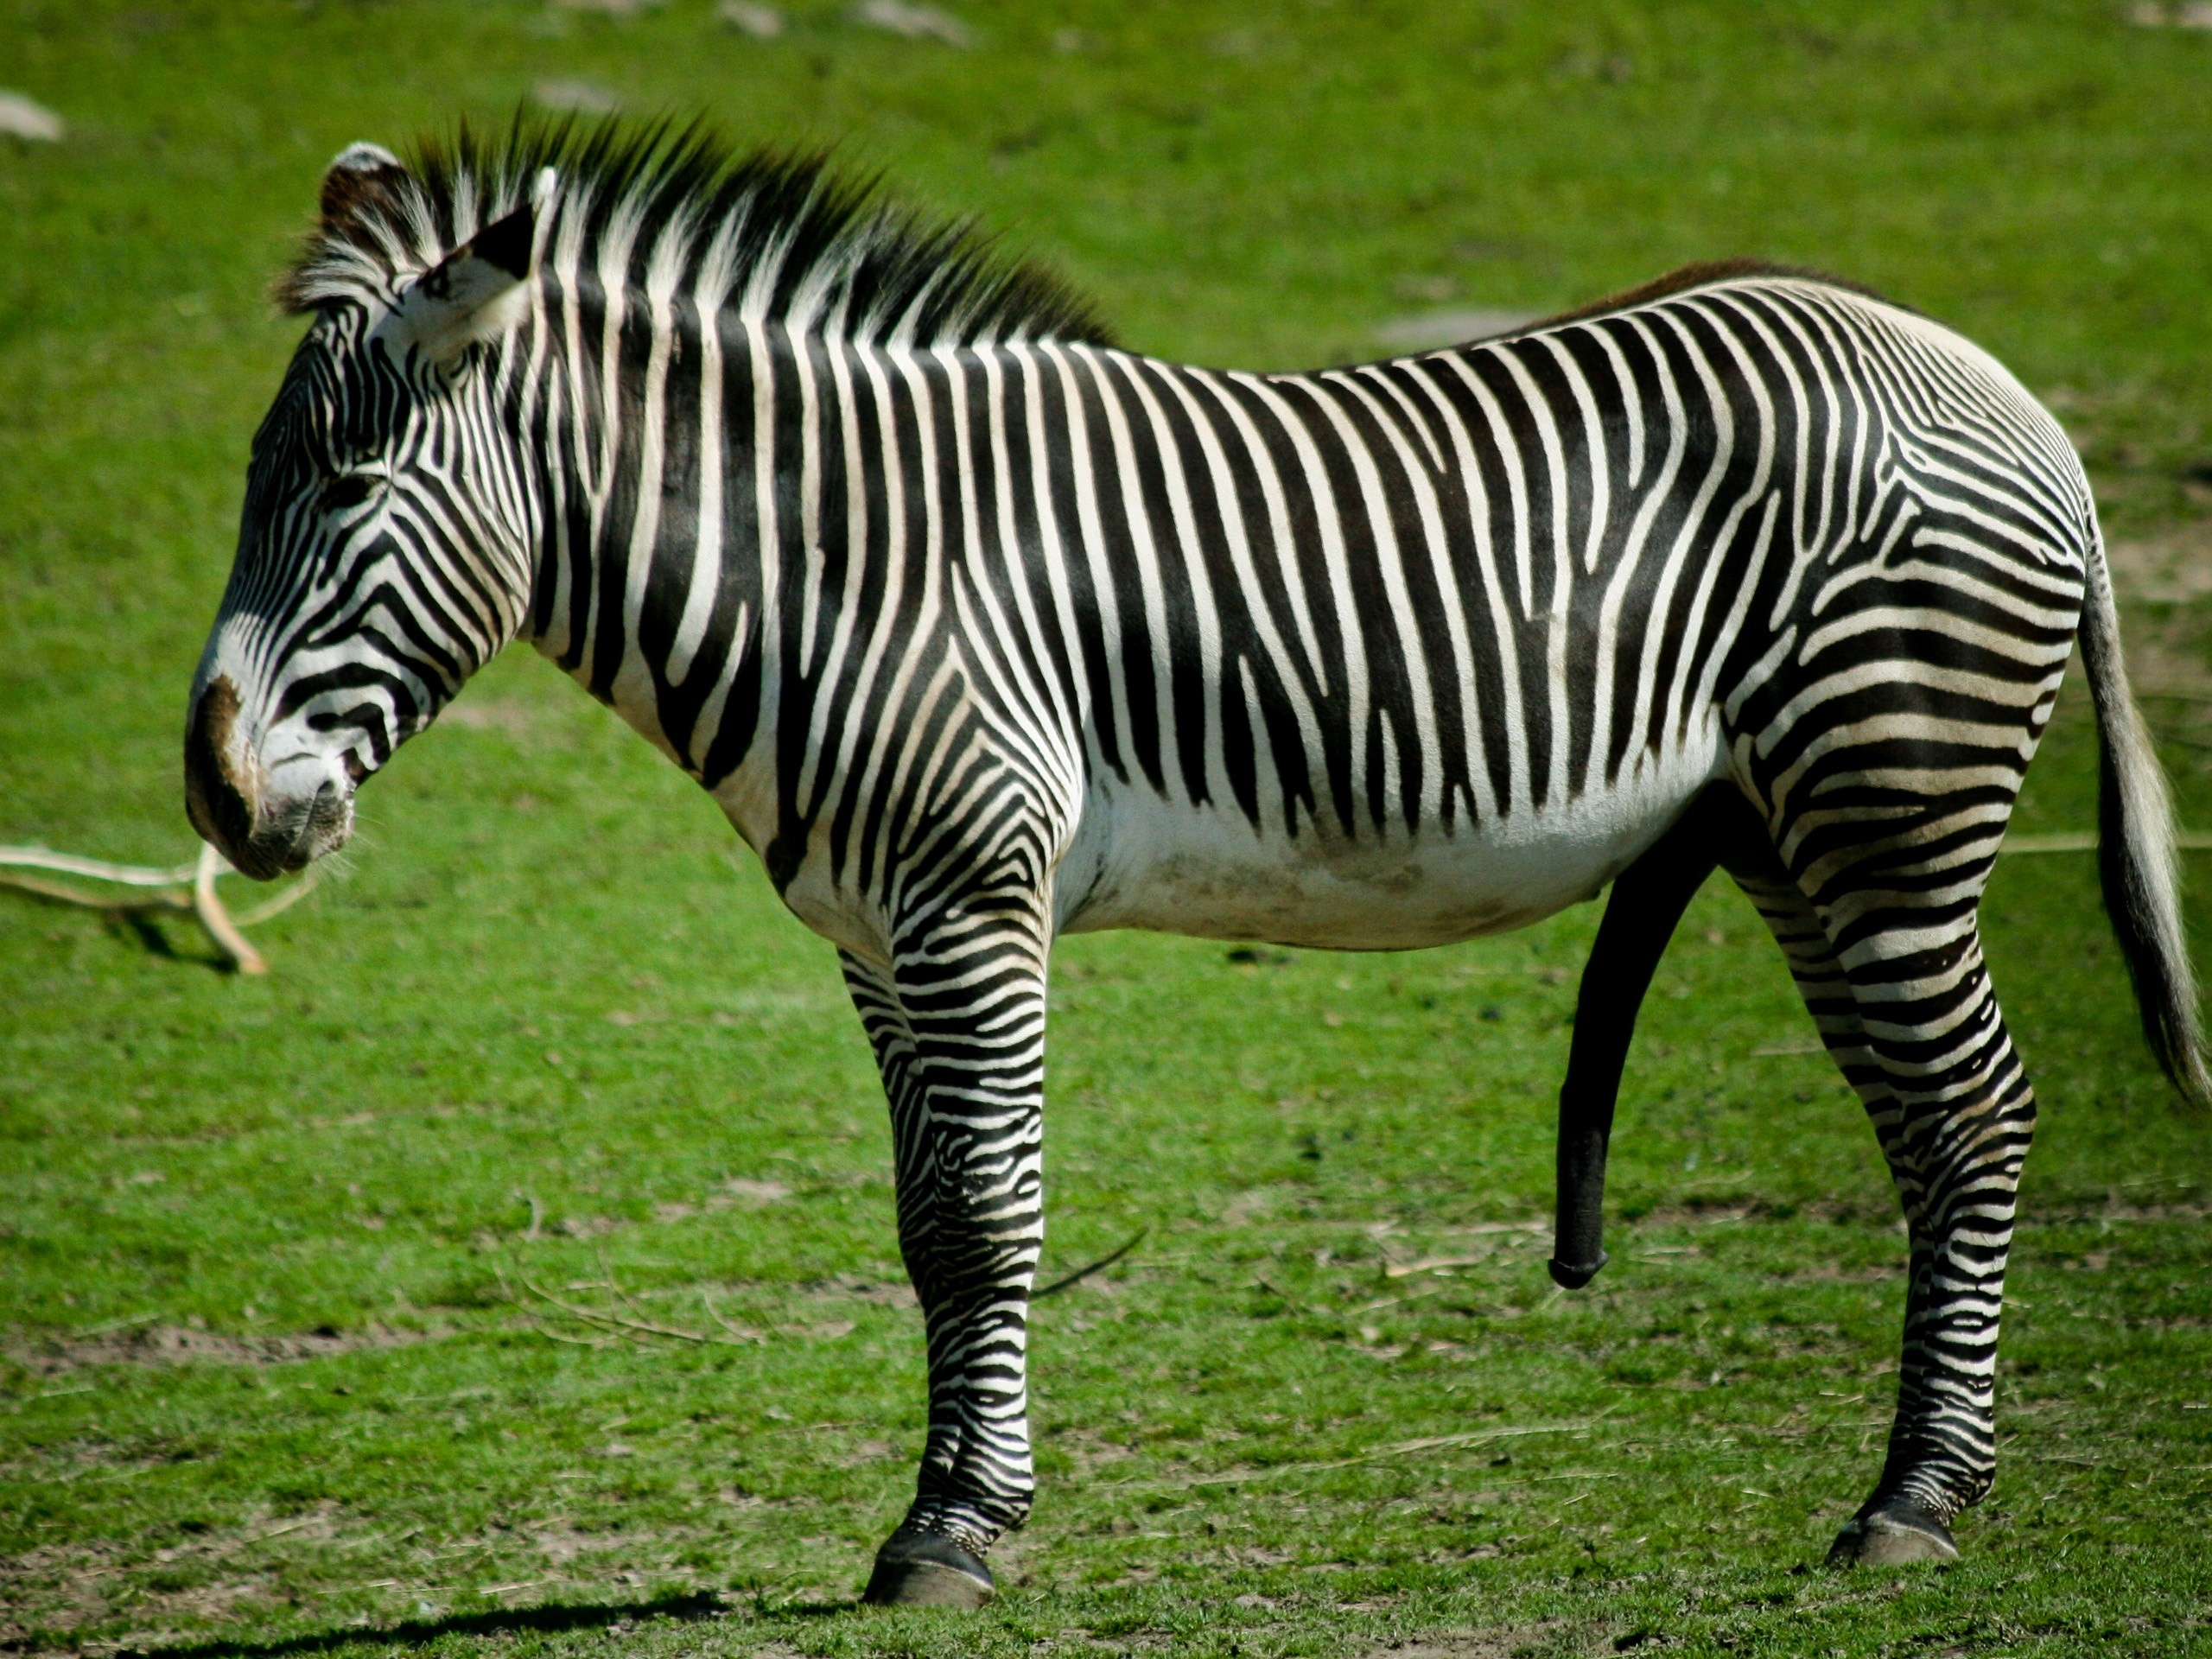 76292 download wallpaper Animals, Zebra, Grass, To Stand, Stand, Striped screensavers and pictures for free